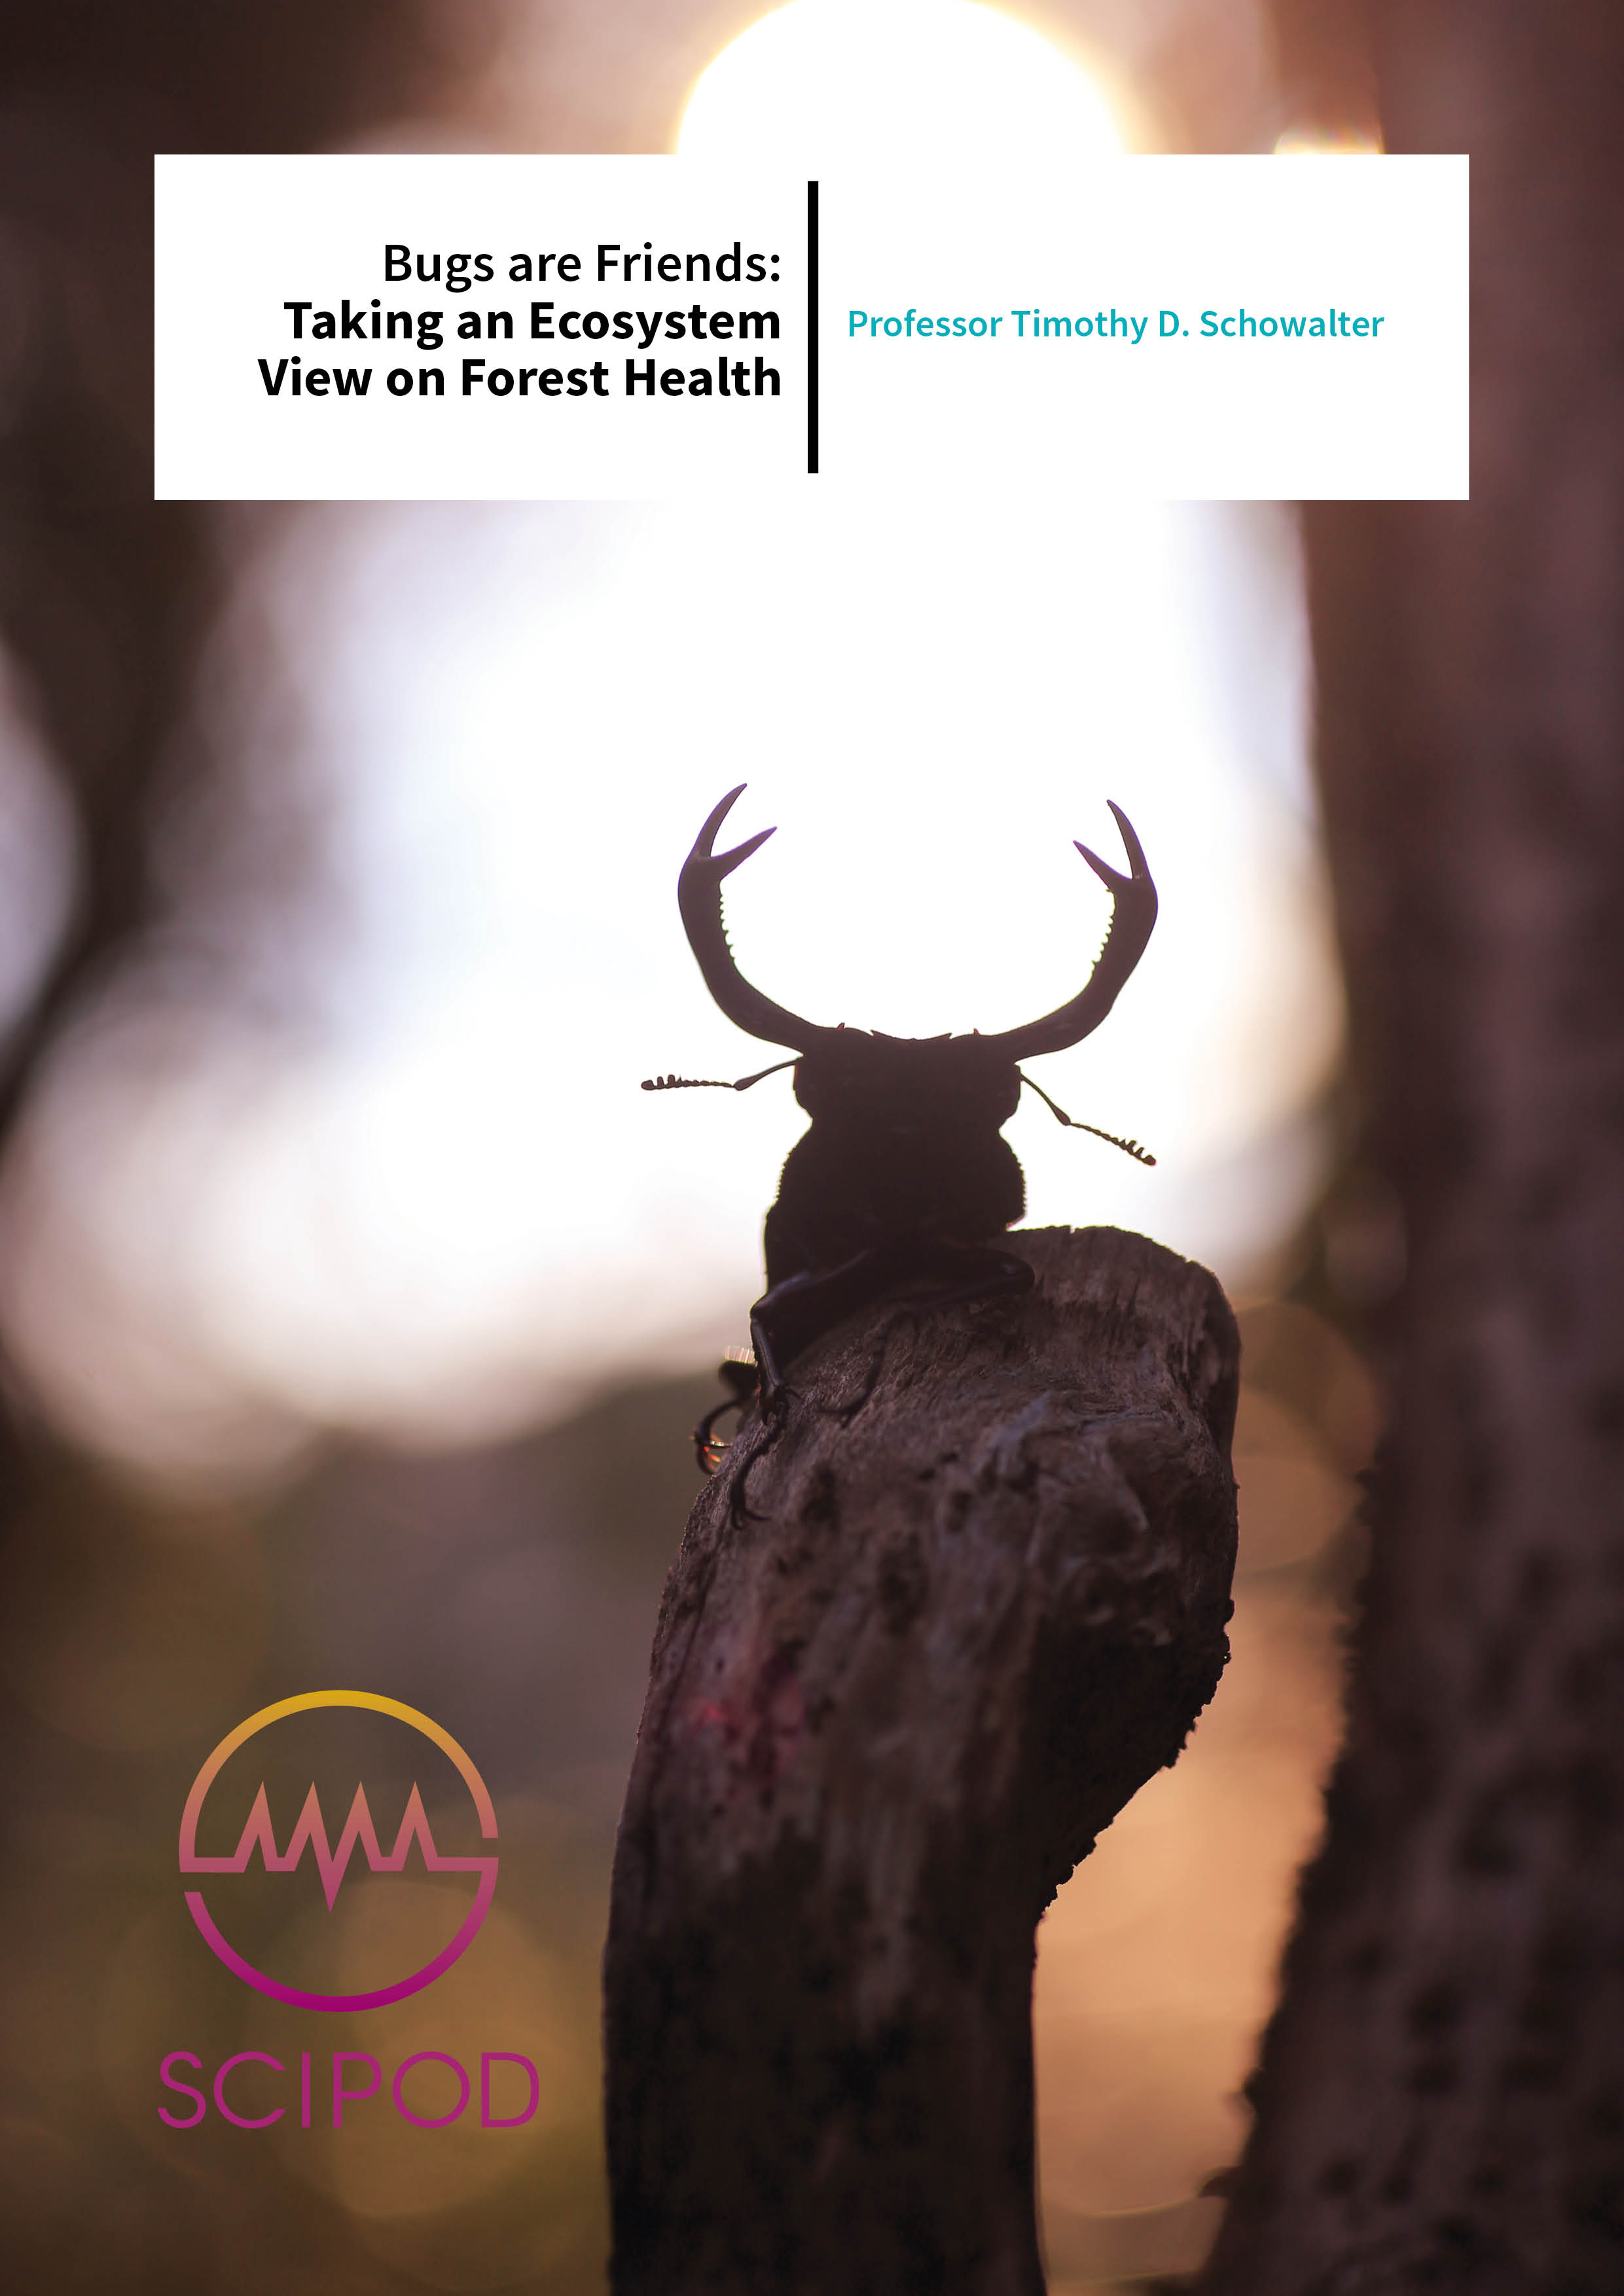 Bugs are Friends Taking an Ecosystem View on Forest Health – Professor Timothy D. Schowalter, Louisiana State University